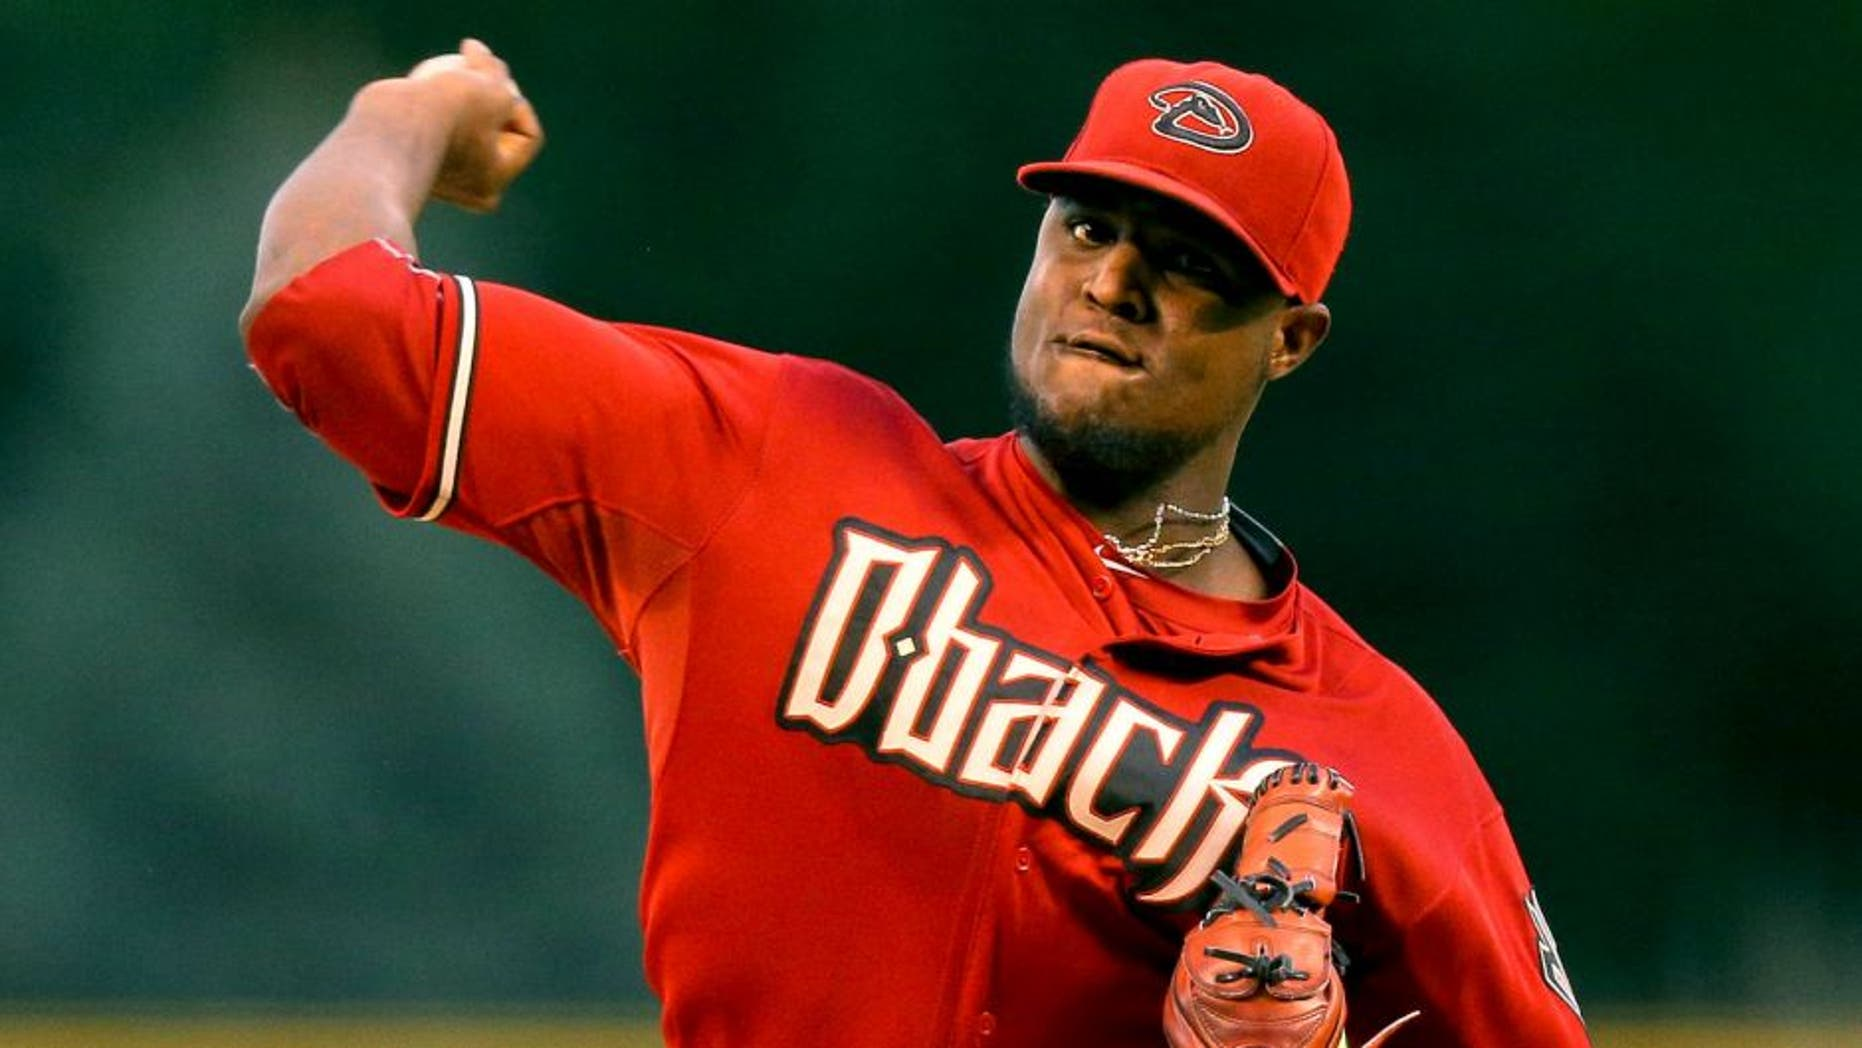 DENVER, CO - SEPTEMBER 1: Starting pitcher Rubby De La Rosa #12 of the Arizona Diamondbacks delivers to home plate during the first inning against the Colorado Rockies at Coors Field on September 1, 2015 in Denver, Colorado. (Photo by Justin Edmonds/Getty Images)